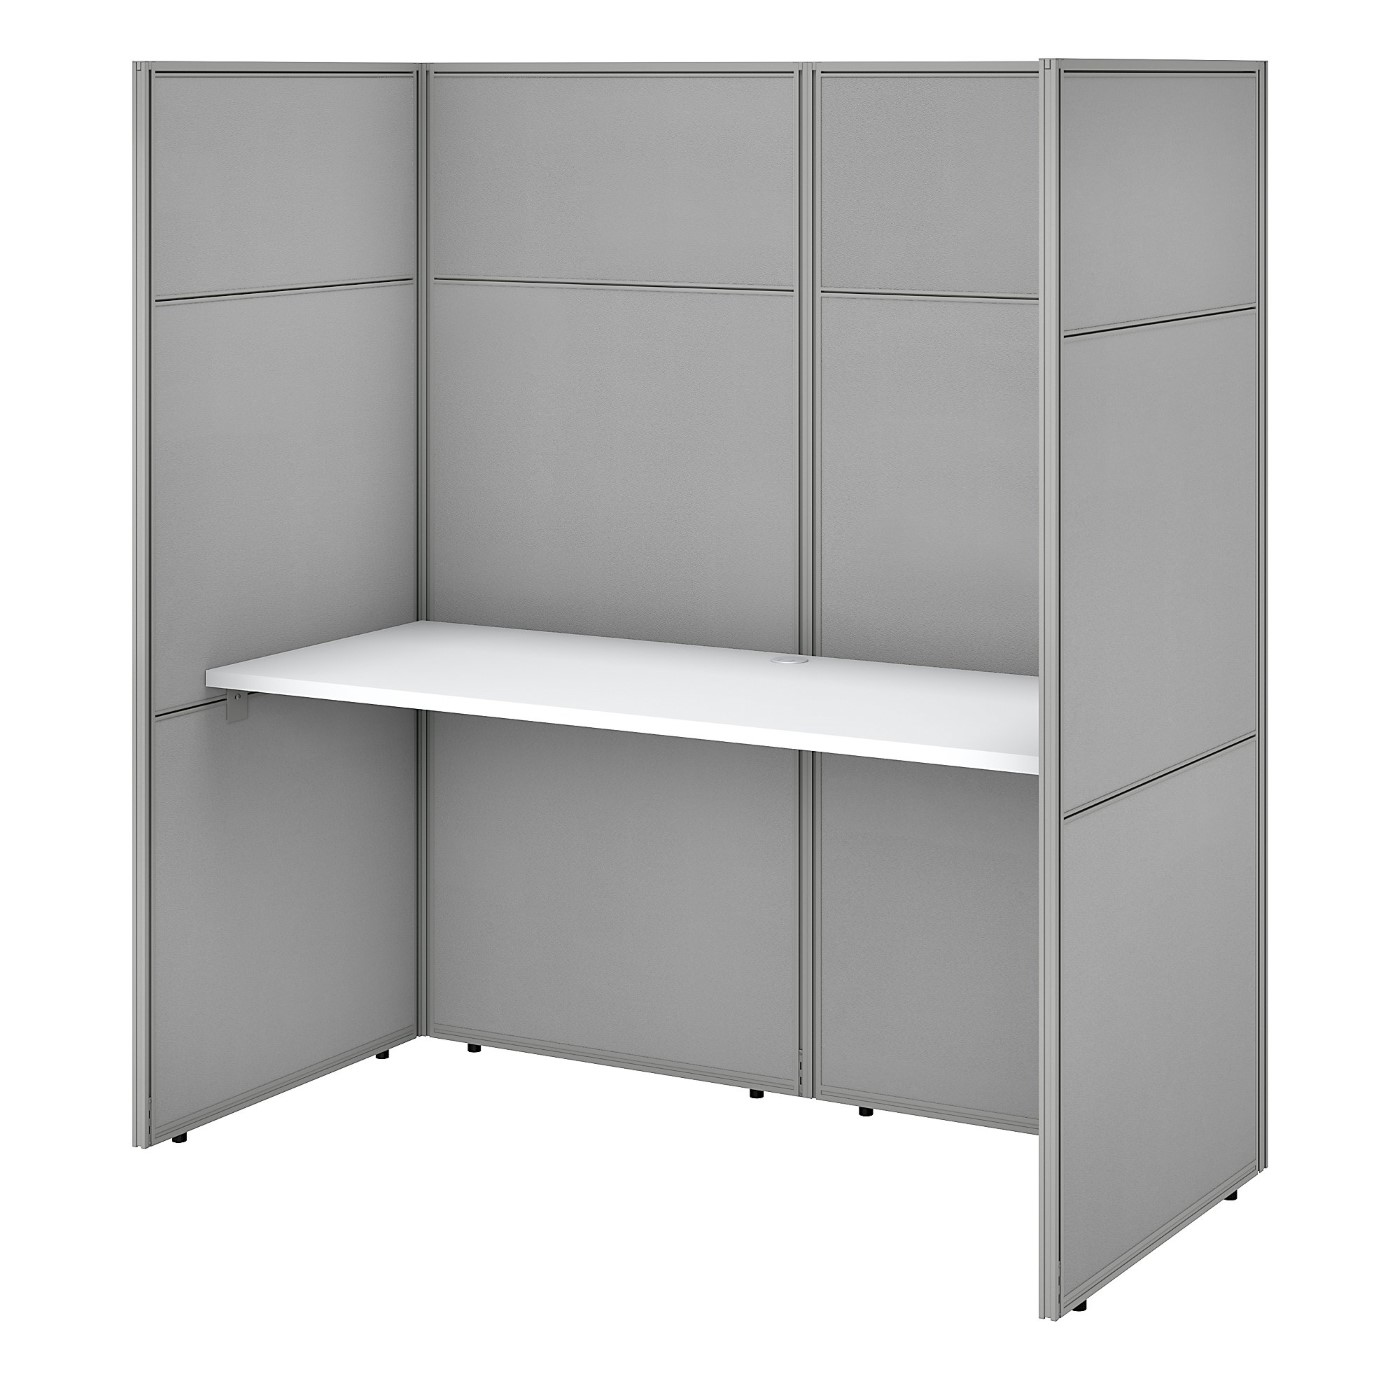 BUSH BUSINESS FURNITURE EASY OFFICE 60W CUBICLE DESK WORKSTATION WITH 66H CLOSED PANELS. FREE SHIPPING SALE DEDUCT 10% MORE ENTER '10percent' IN COUPON CODE BOX WHILE CHECKING OUT. ENDS 5-31-20.